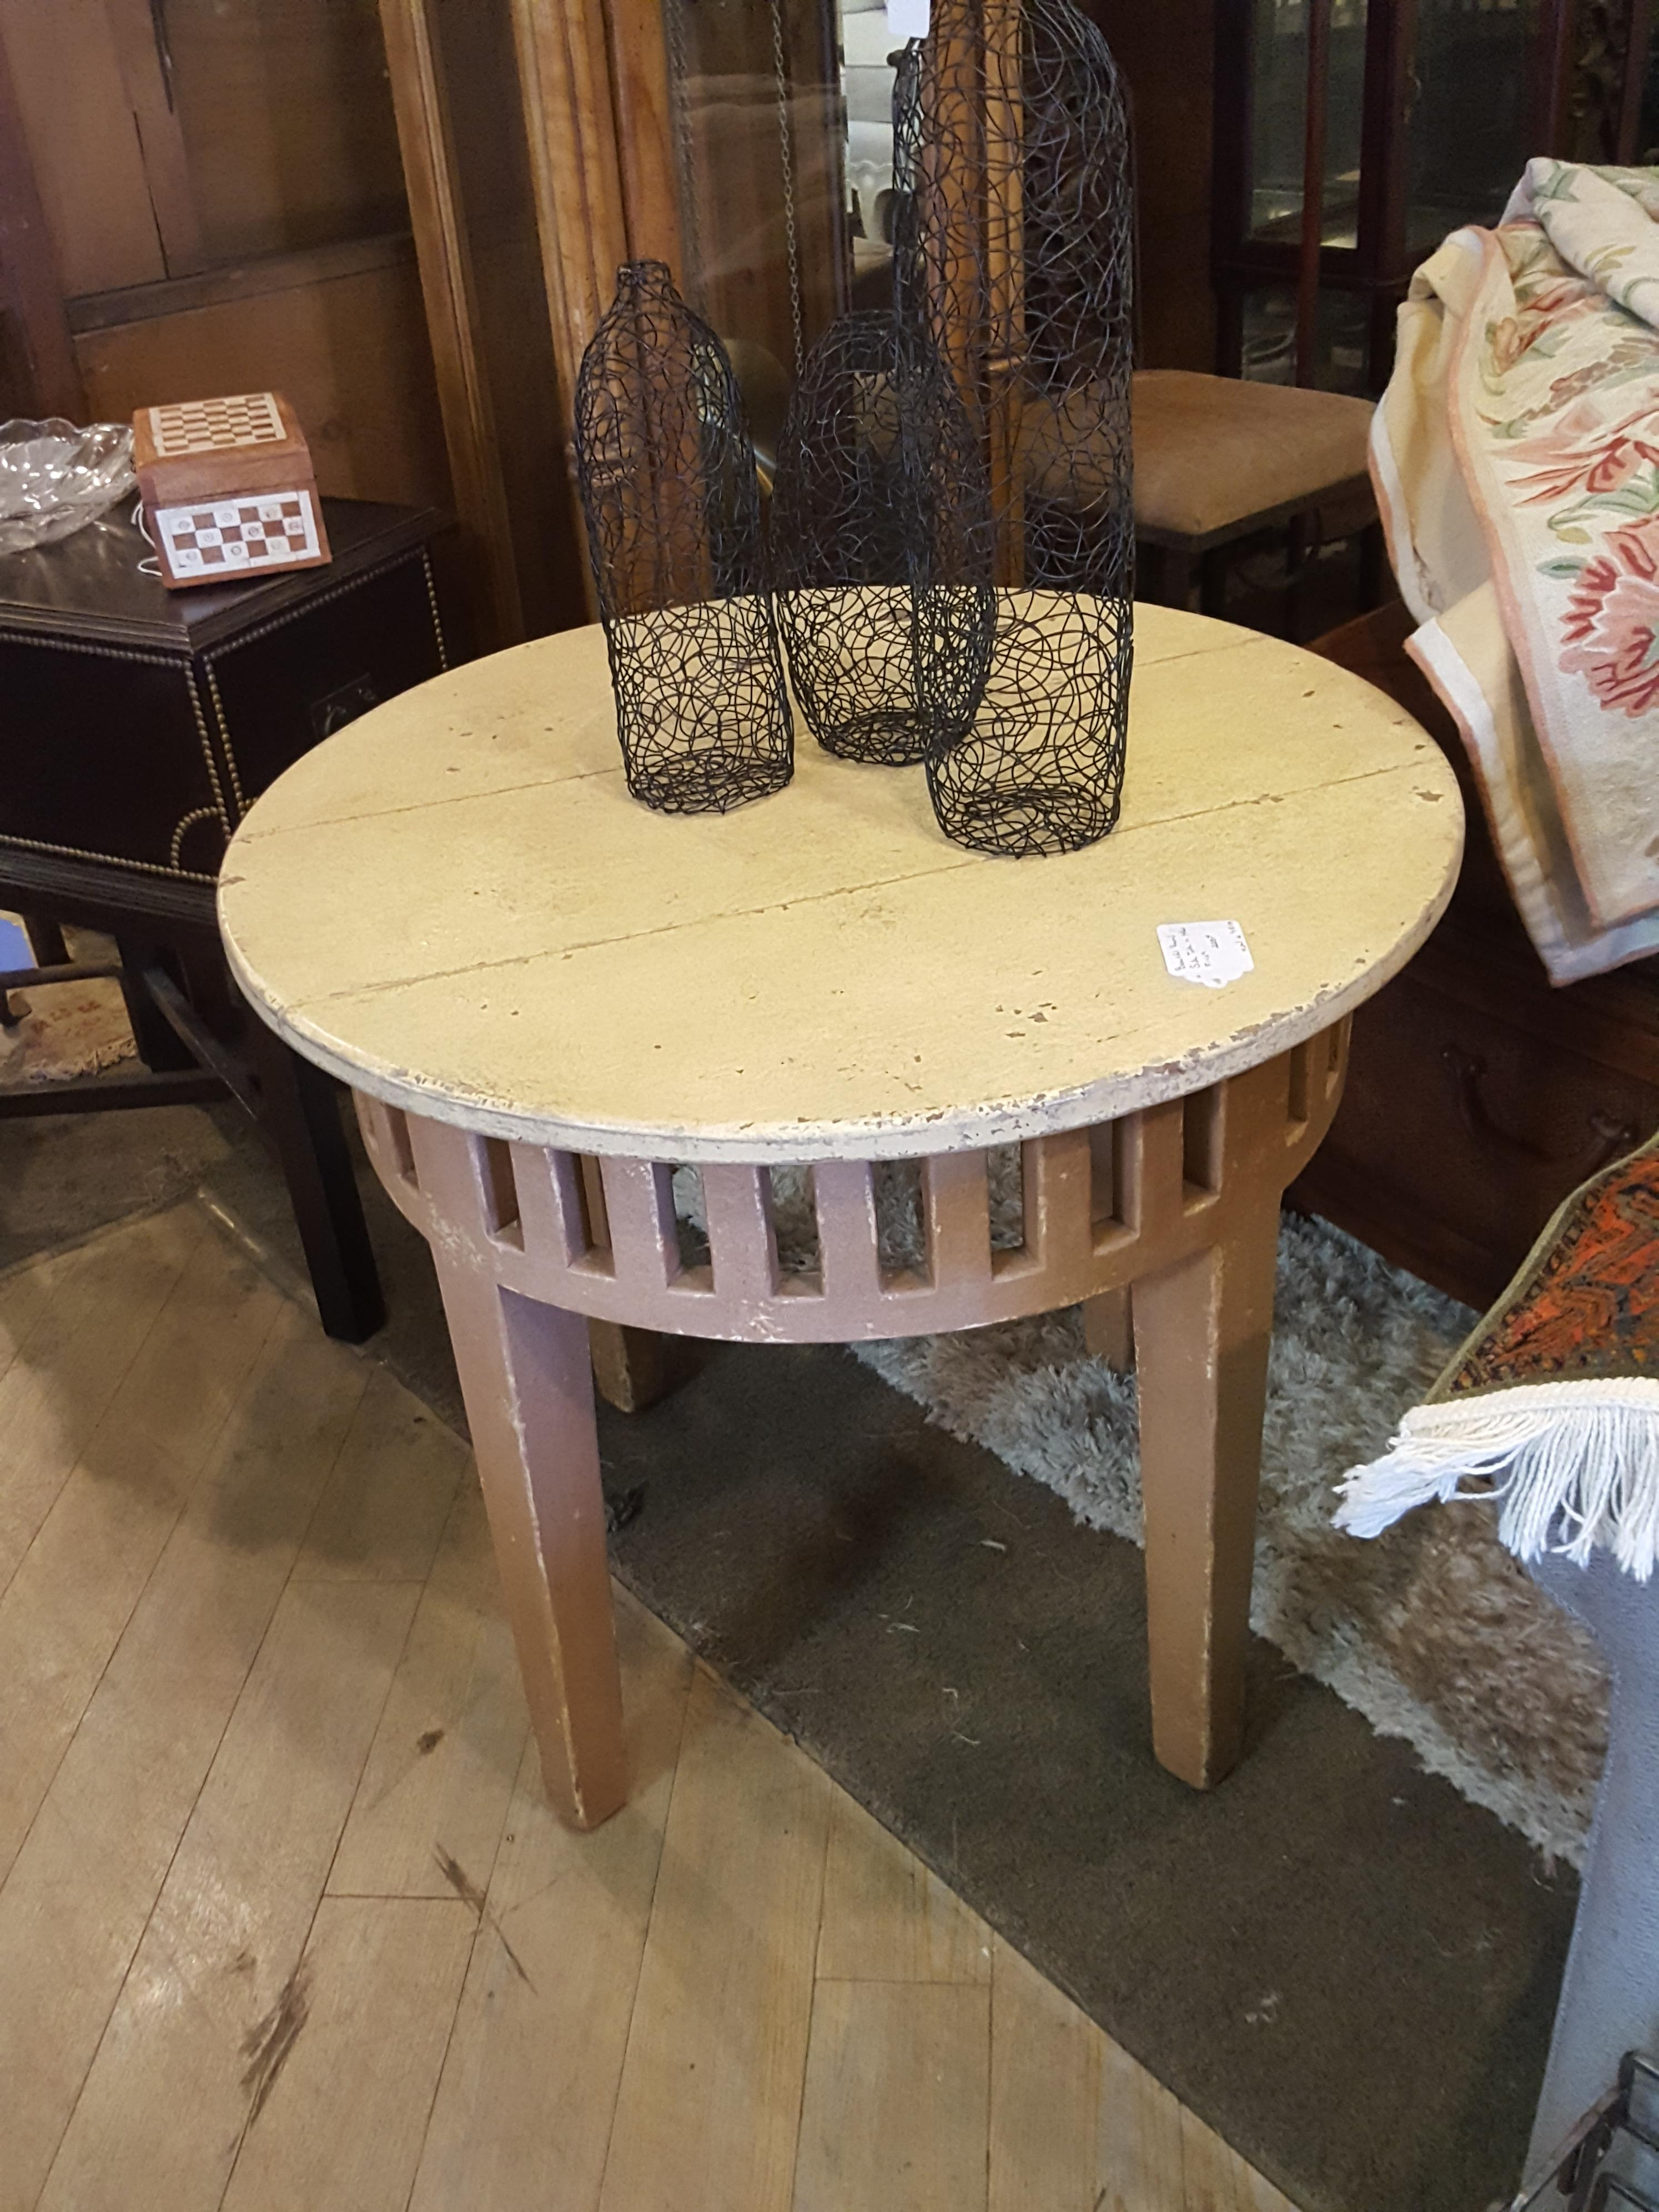 Carved wood distressed side table by Tables, Desks, Stands Price: $225.00